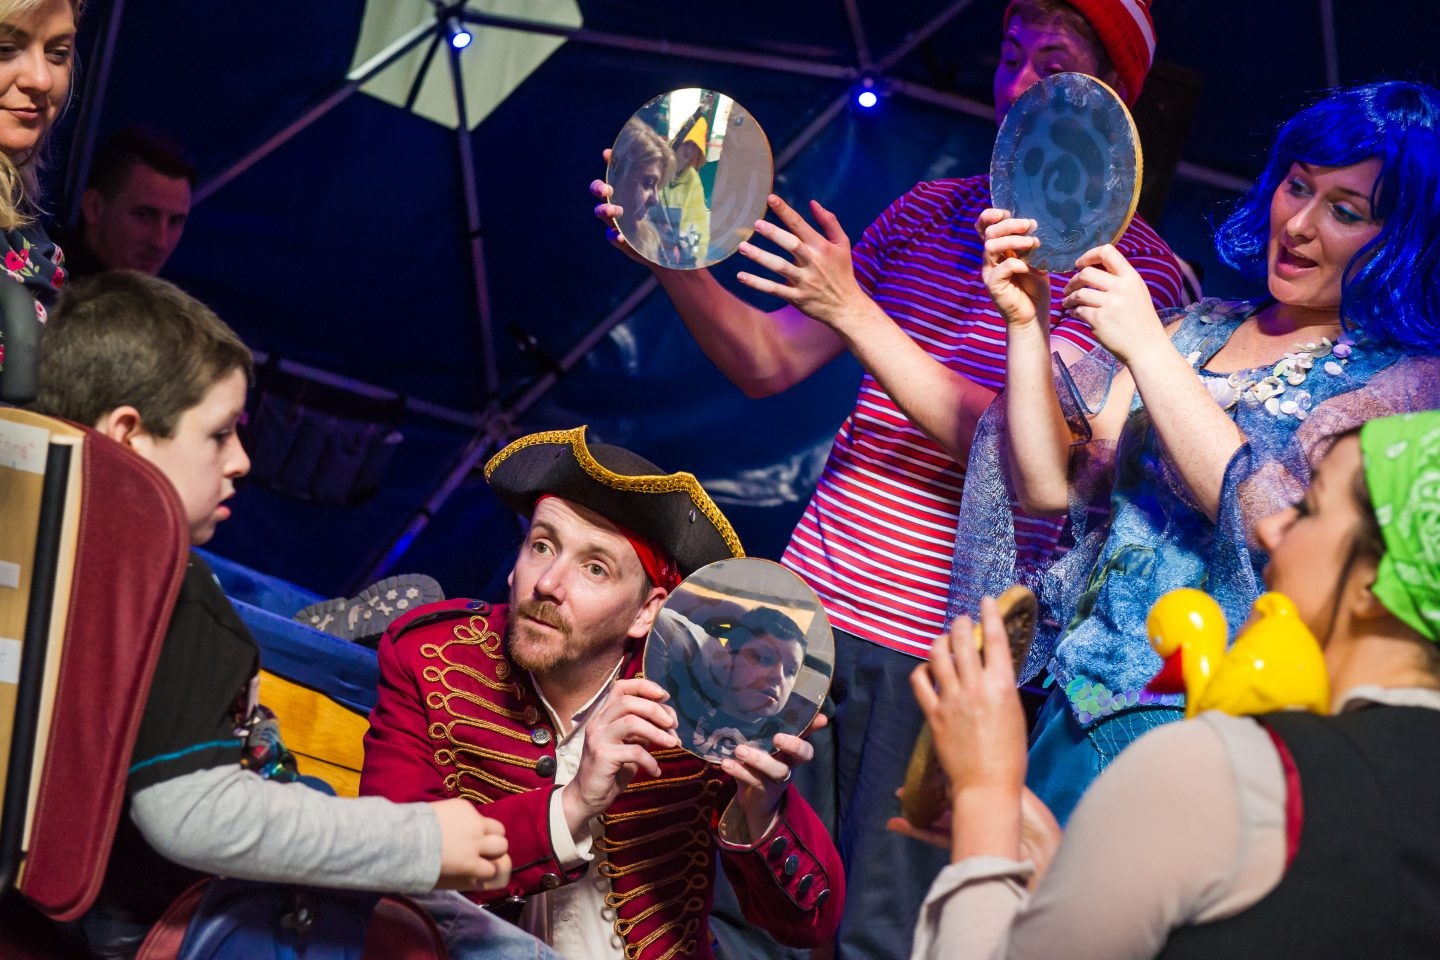 Bliss - four performers (dressed as a sea captain, a mermaid with blue hair, a pirate with a duck on her shoulder and a cabin boy in a stripy t-shirt) hold circular mirrors to reflect the face of a young audience member. two adults look on